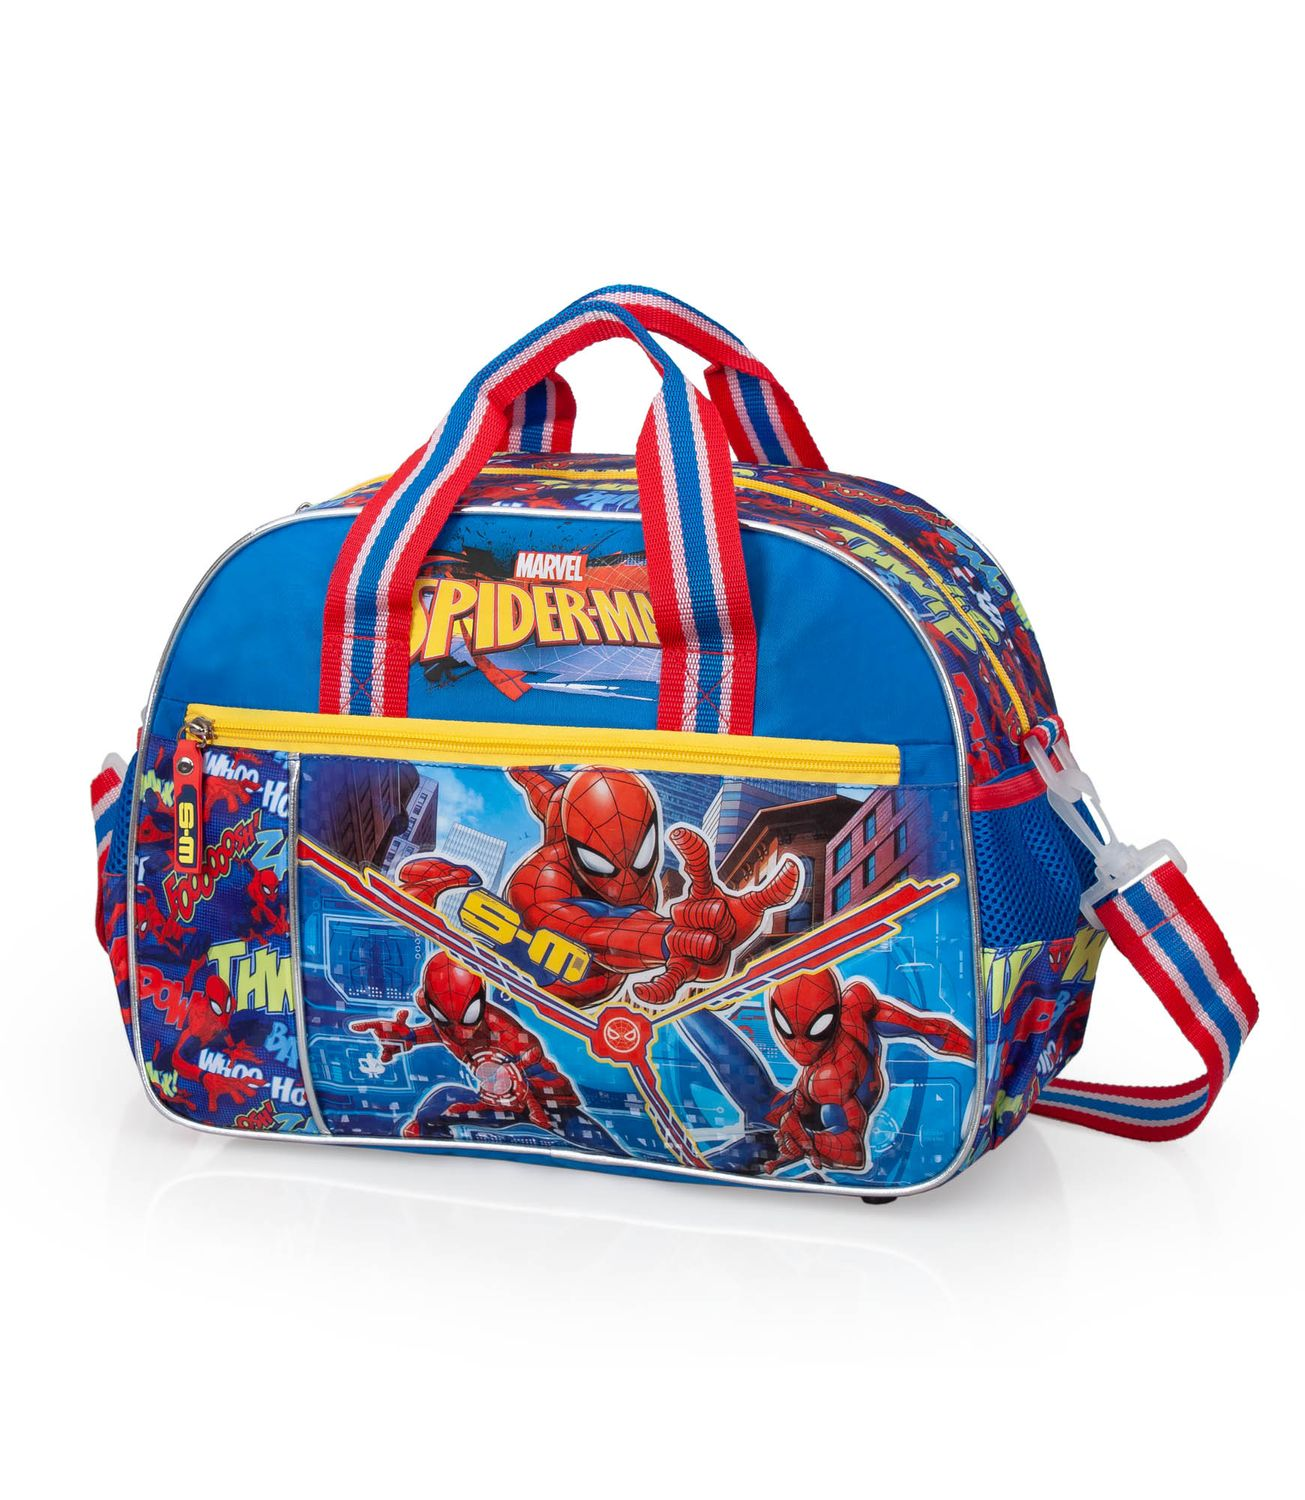 Holdall Travel Bag Spider Man S-M  – image 1